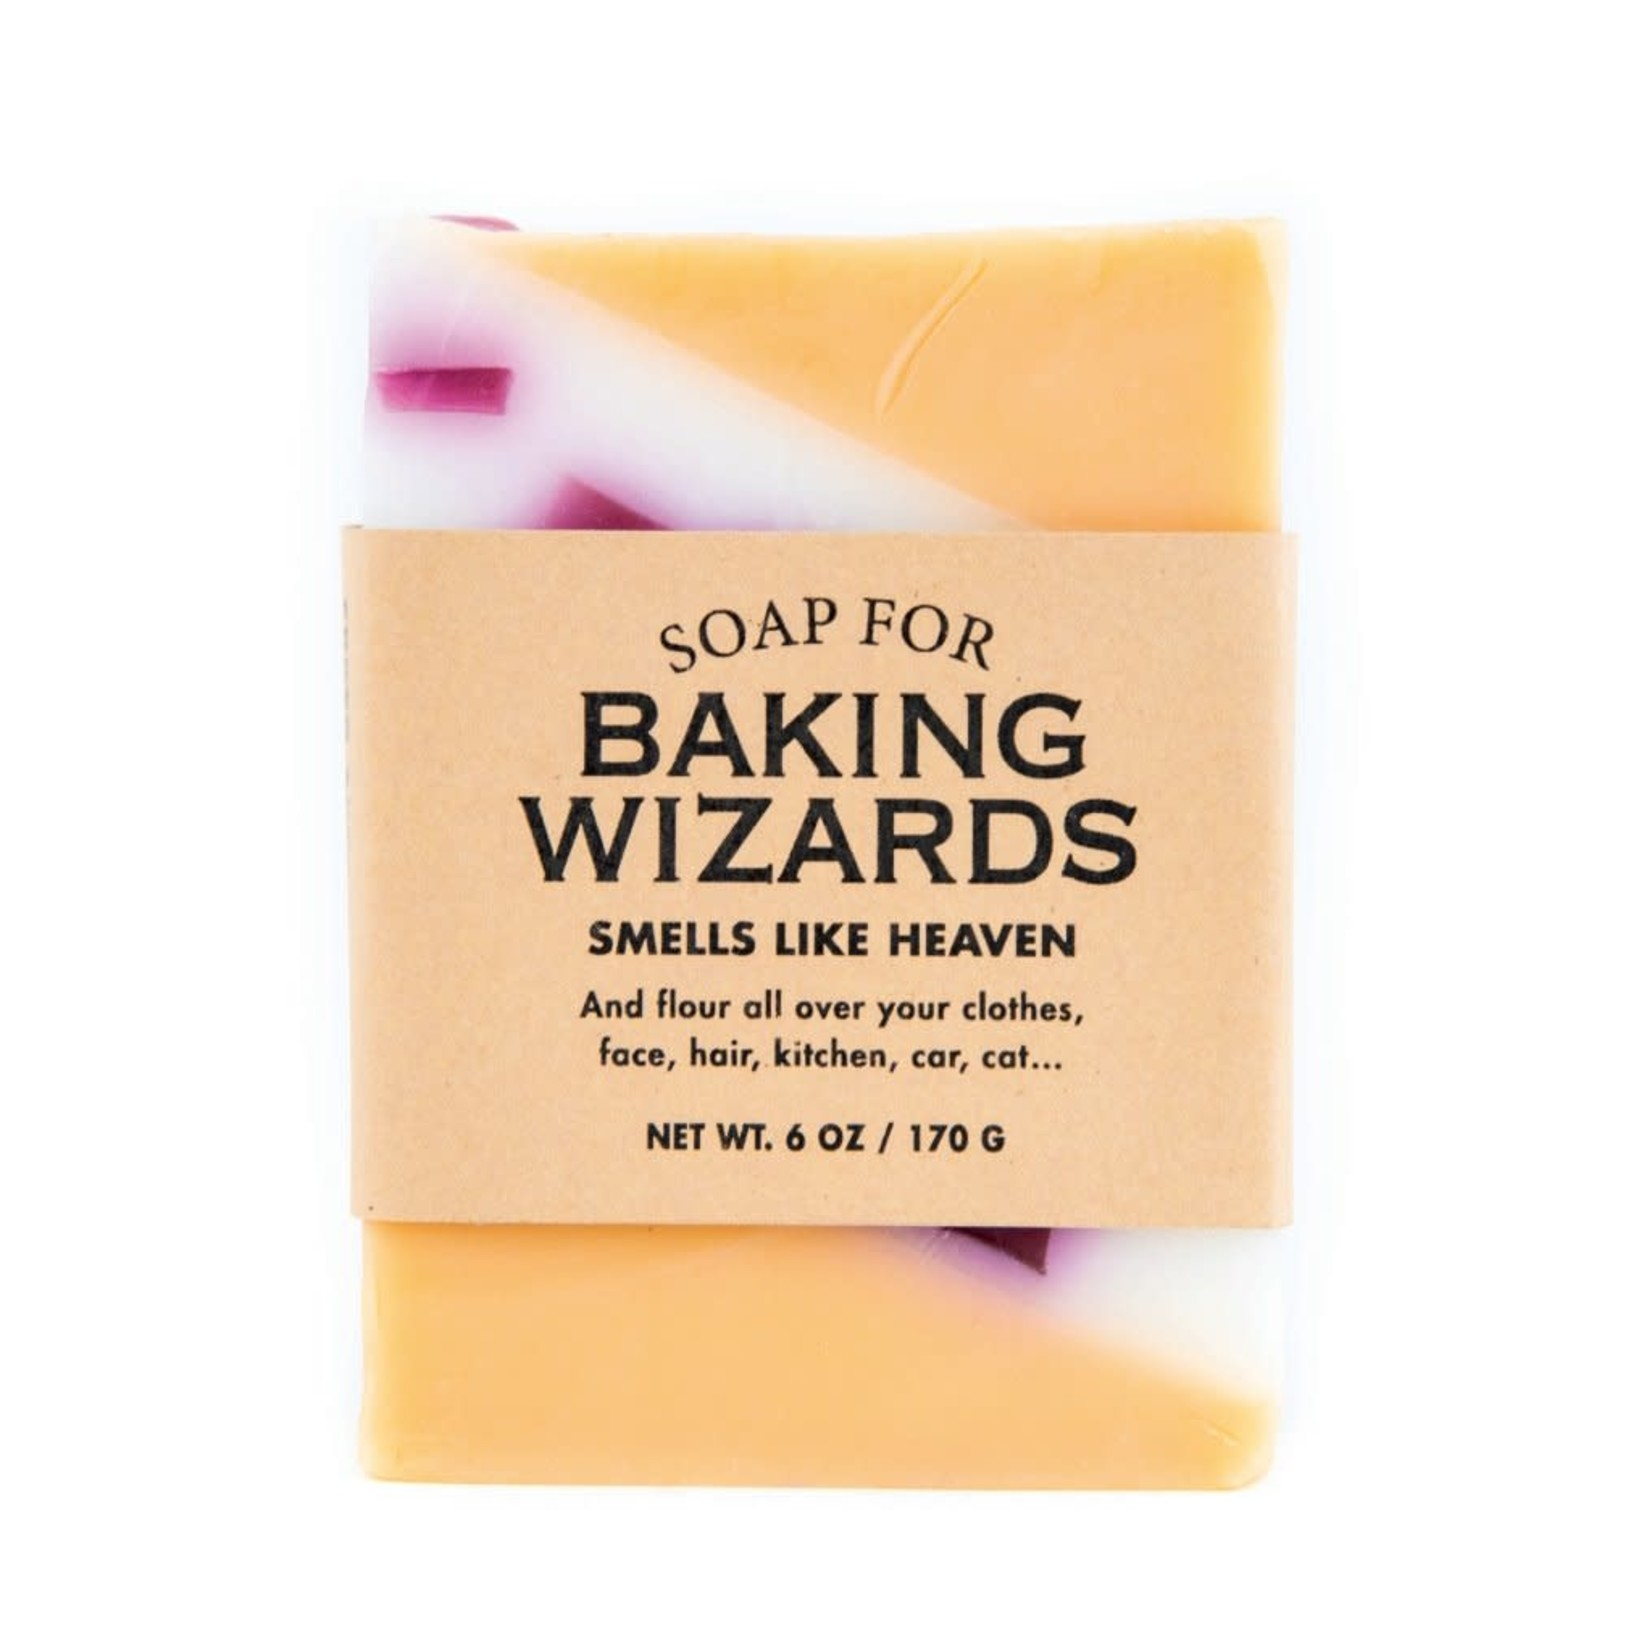 Soap - Baking Wizards